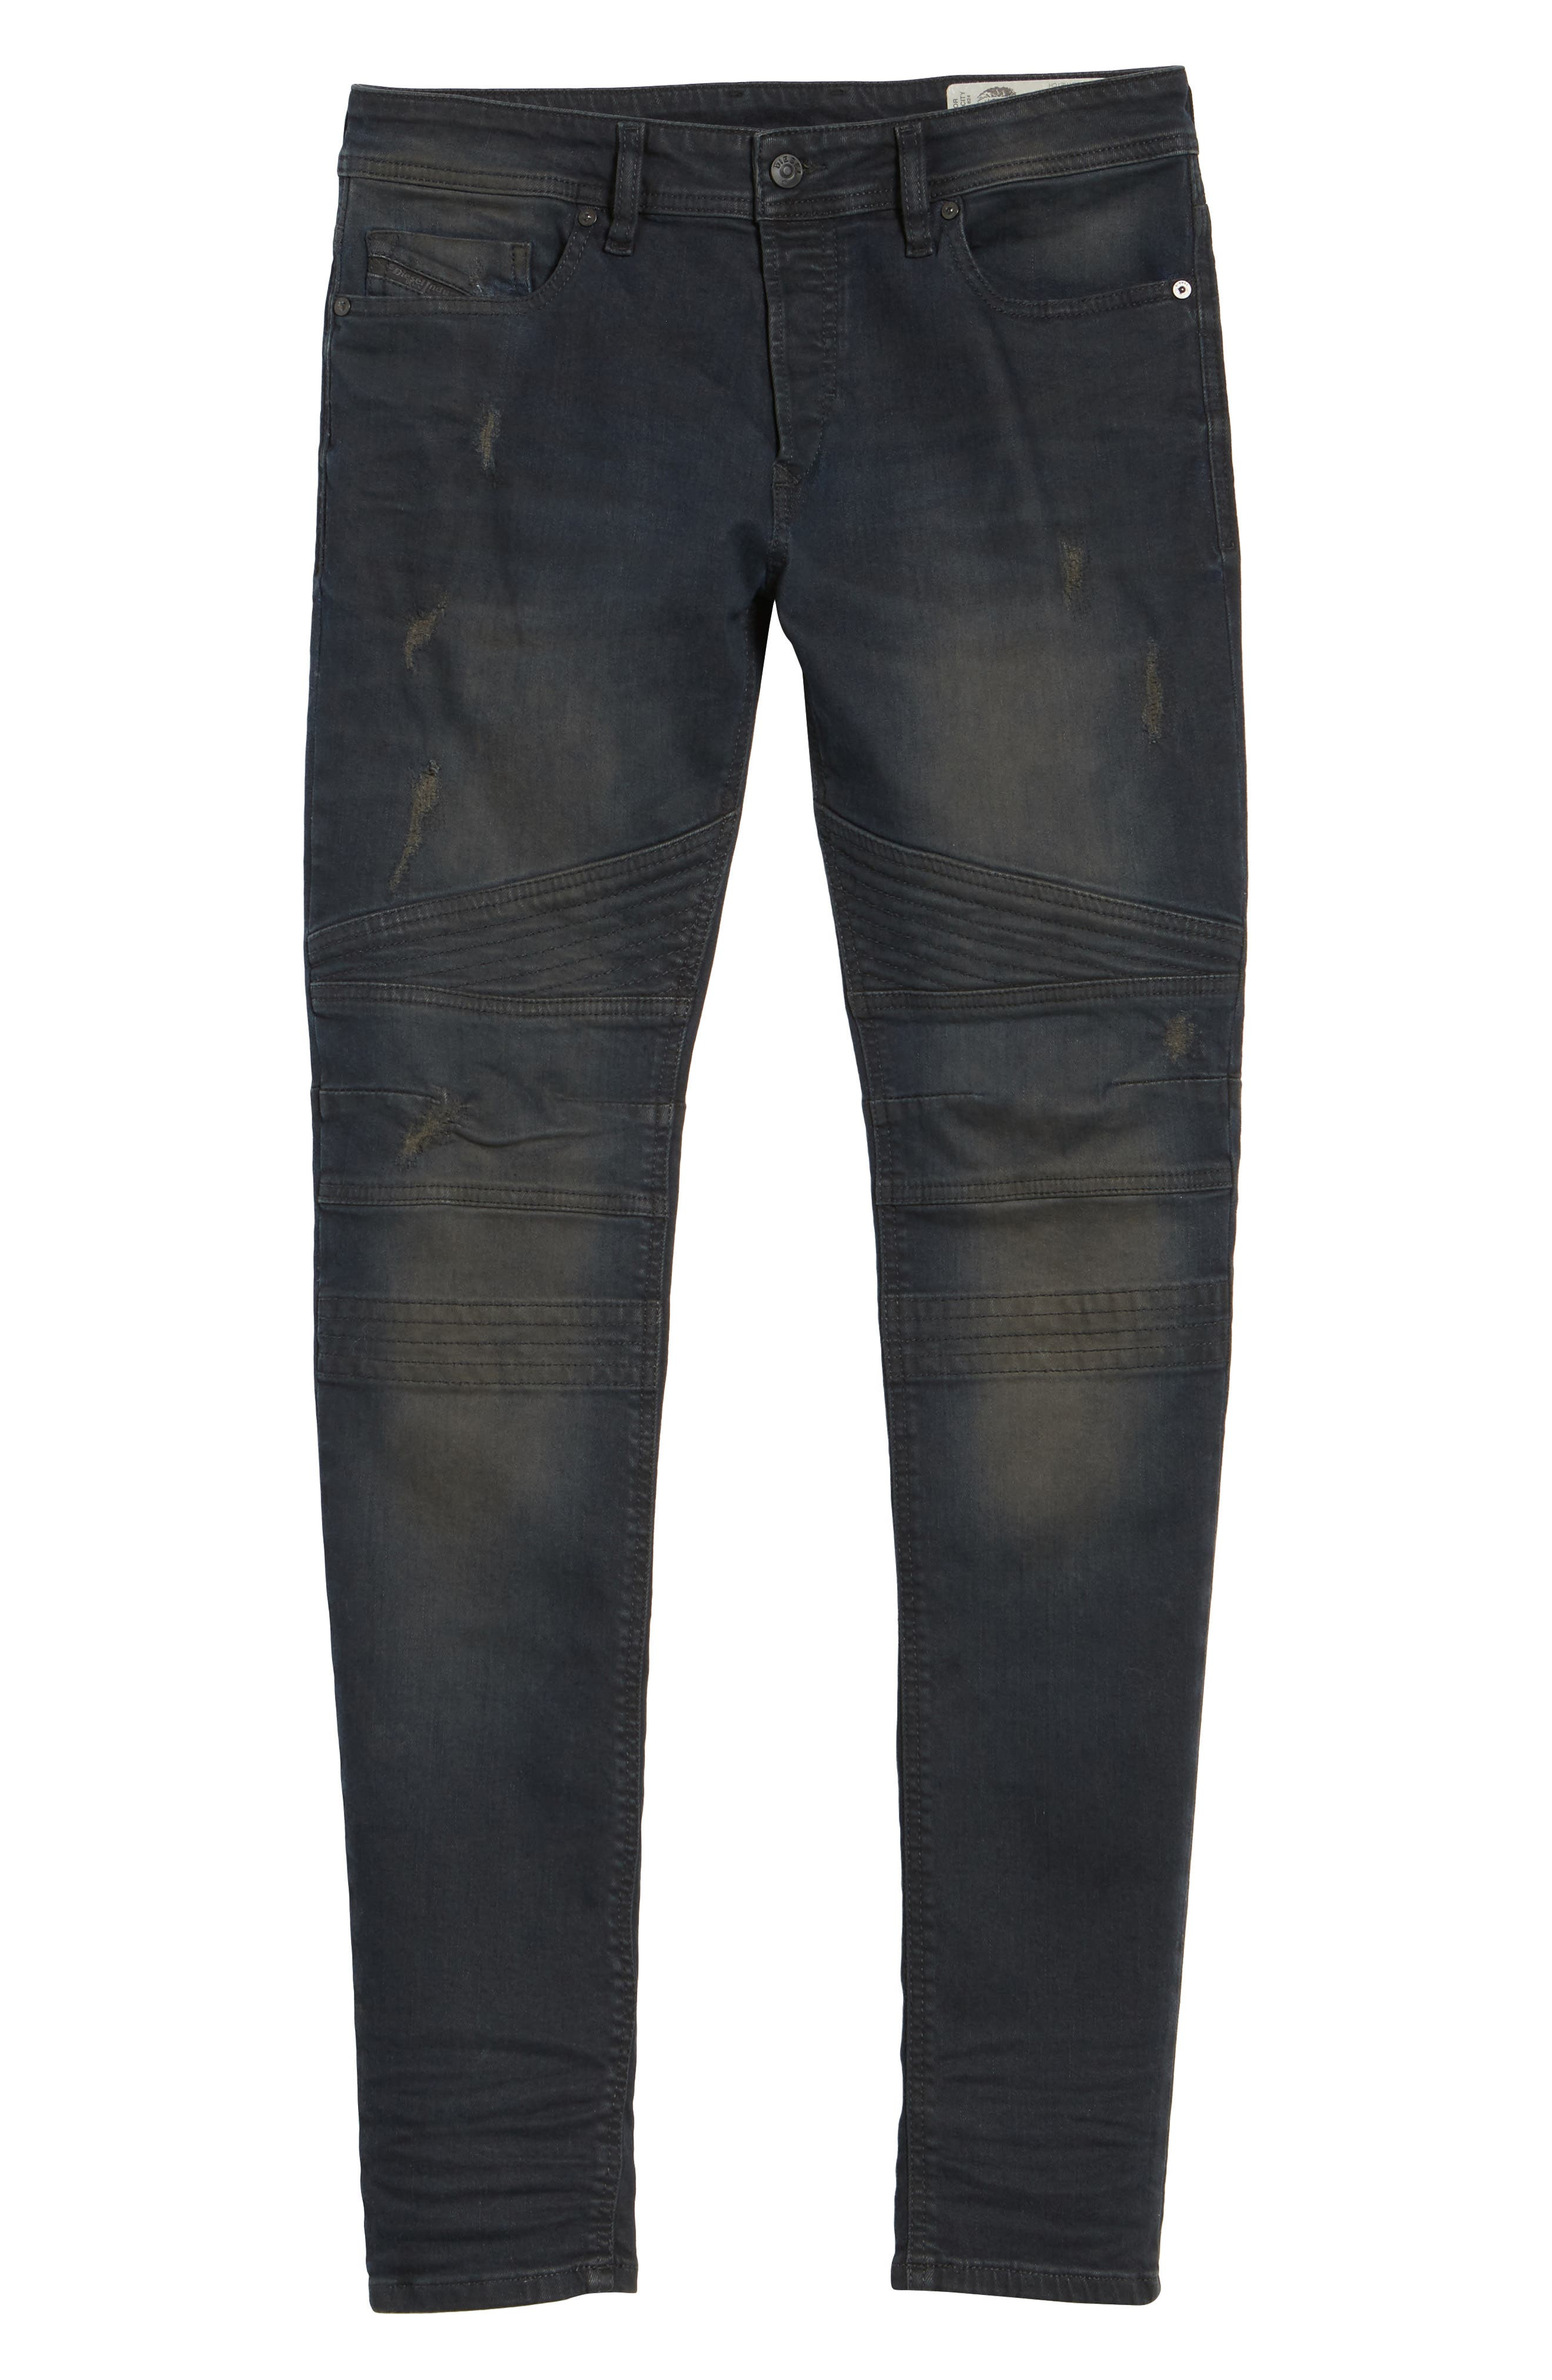 Fourk Skinny Fit Jeans,                             Alternate thumbnail 6, color,